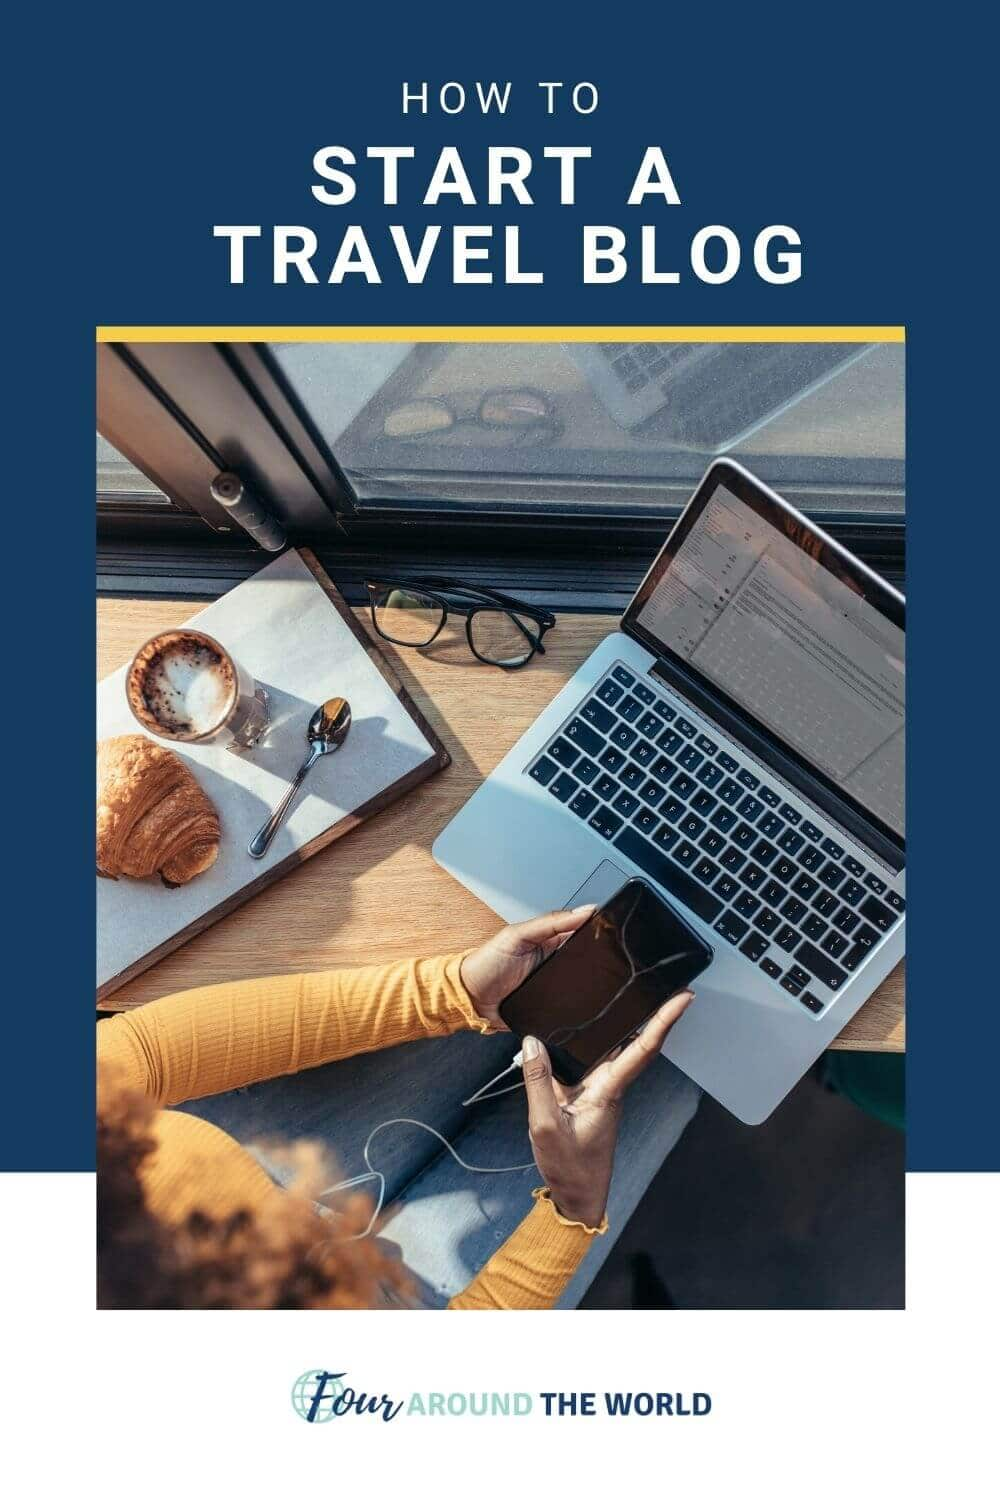 how to start a travel blog in 2021